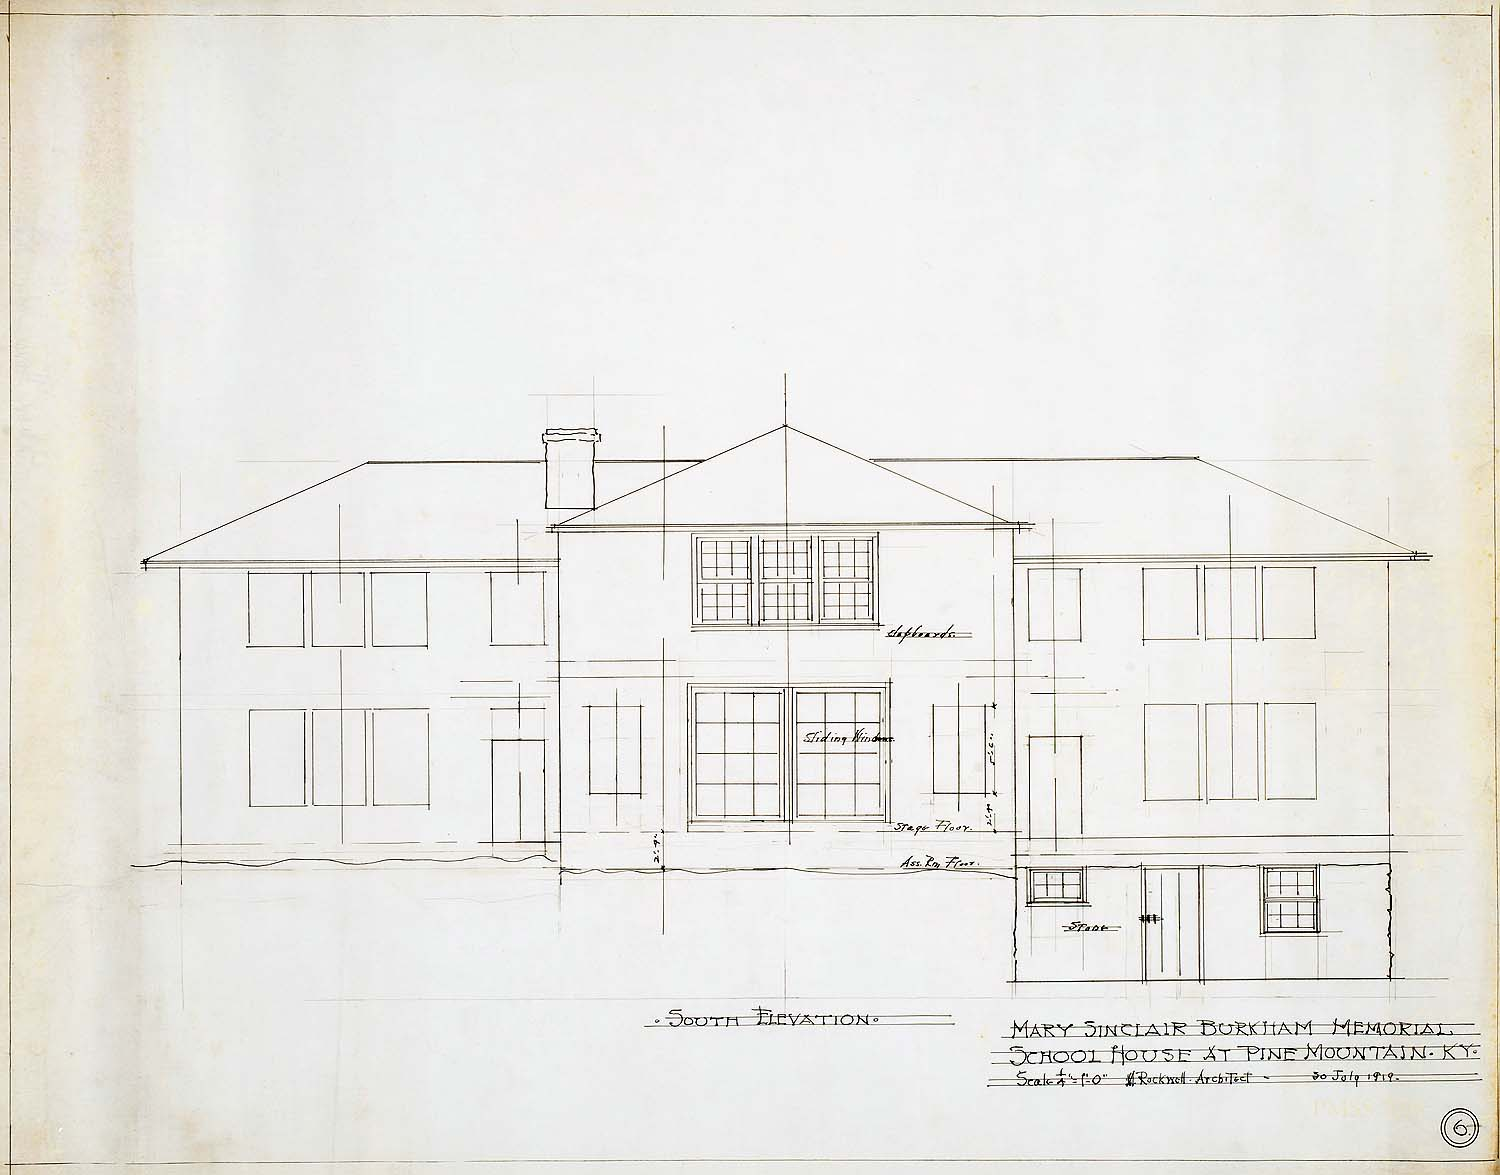 Guide Architectural Drawings At Pmss Pine Mountain Settlement